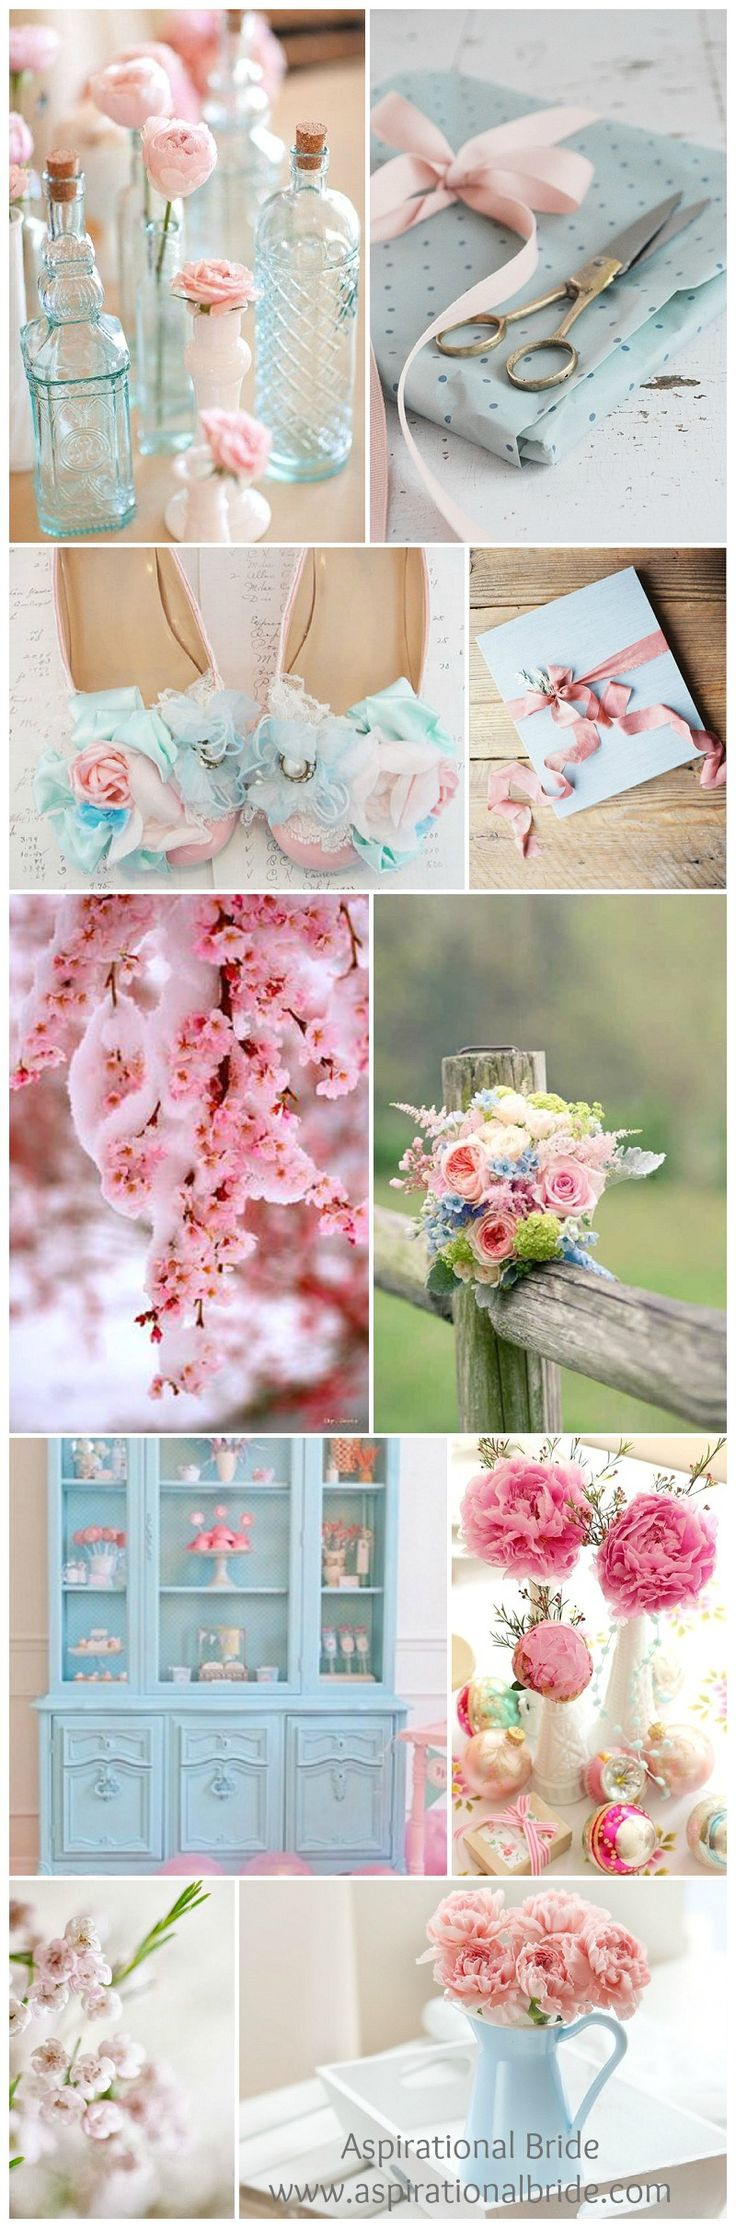 Wedding App ♡ HOW TO successfully plan a wedding ♡ https://itunes.apple.com/us/app/the-gold-wedding-planner/id498112599?ls=1=8 Blue shabby chic wedding